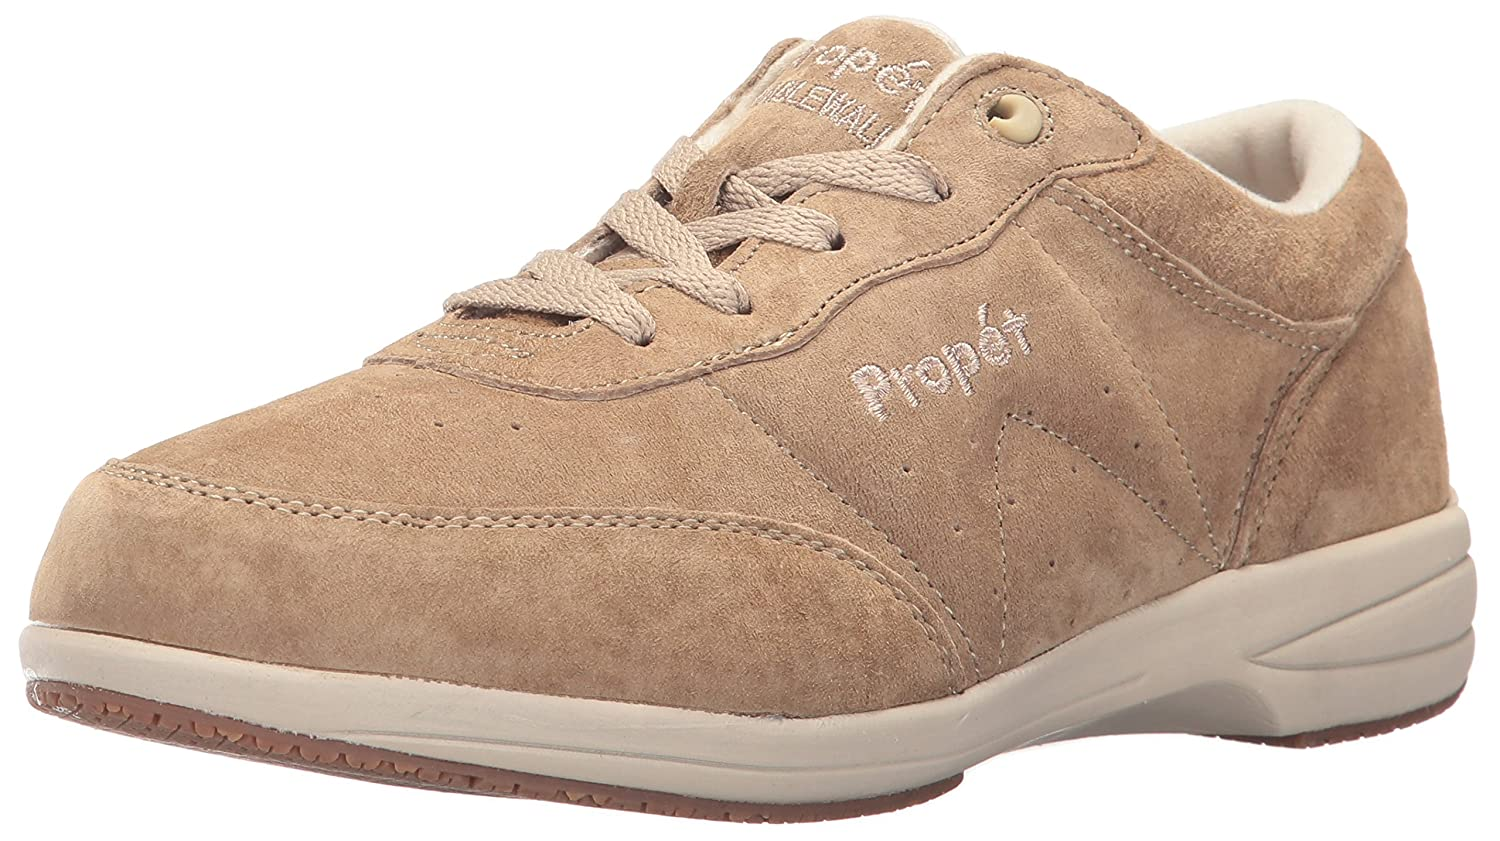 Propet Women's Washable Walker Sneaker B01N1MVIBJ 7 N US|Sr Taupe